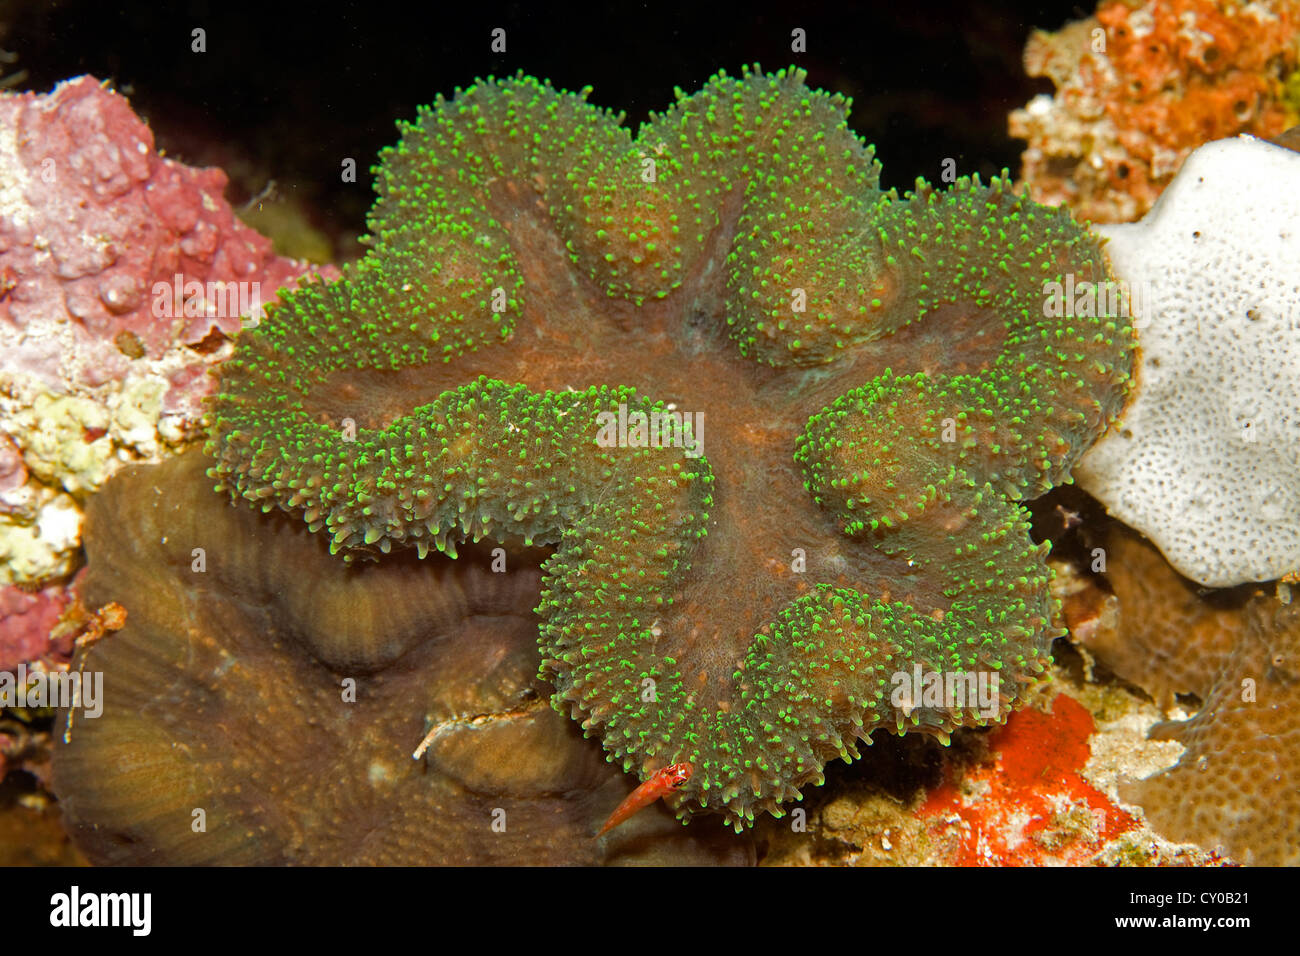 Flat brain coral (Lobophyllia sp.), Moalboal, province of Cebu, Negros, Philippines, Asia, Indo-Pacific Ocean - Stock Image